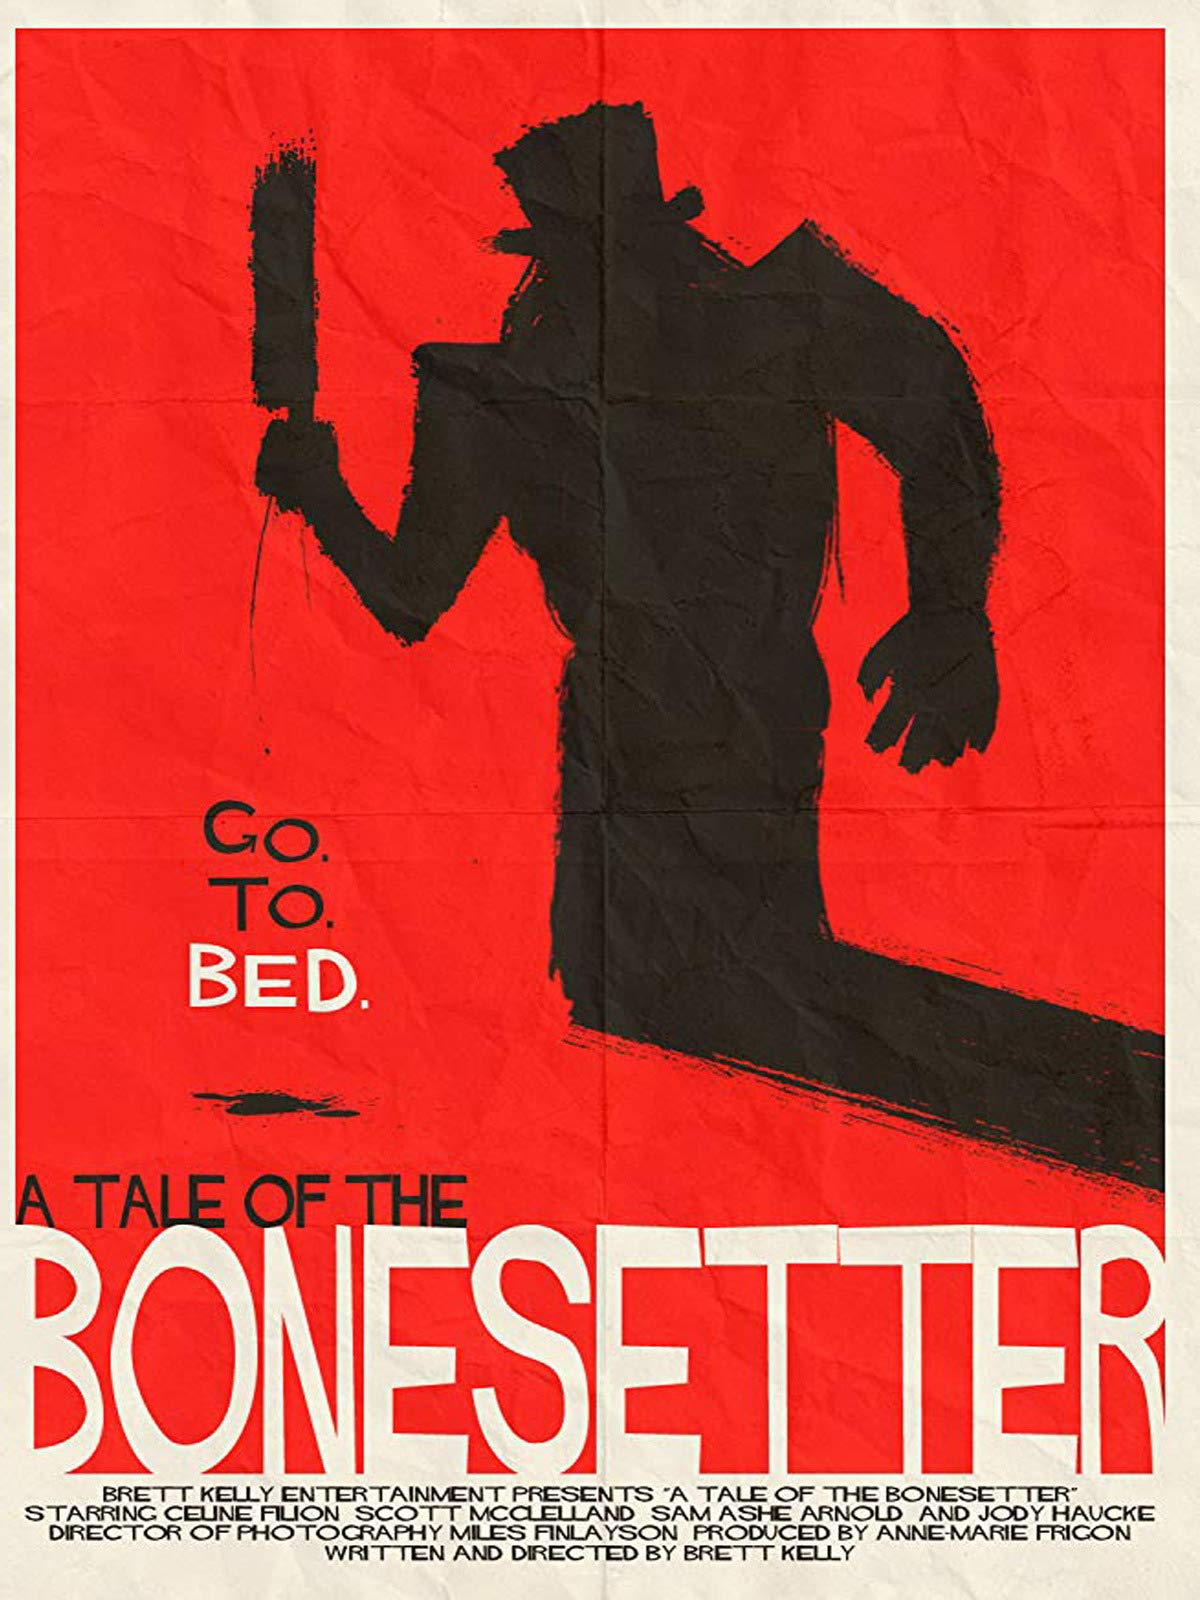 A Tale of the Bonesetter